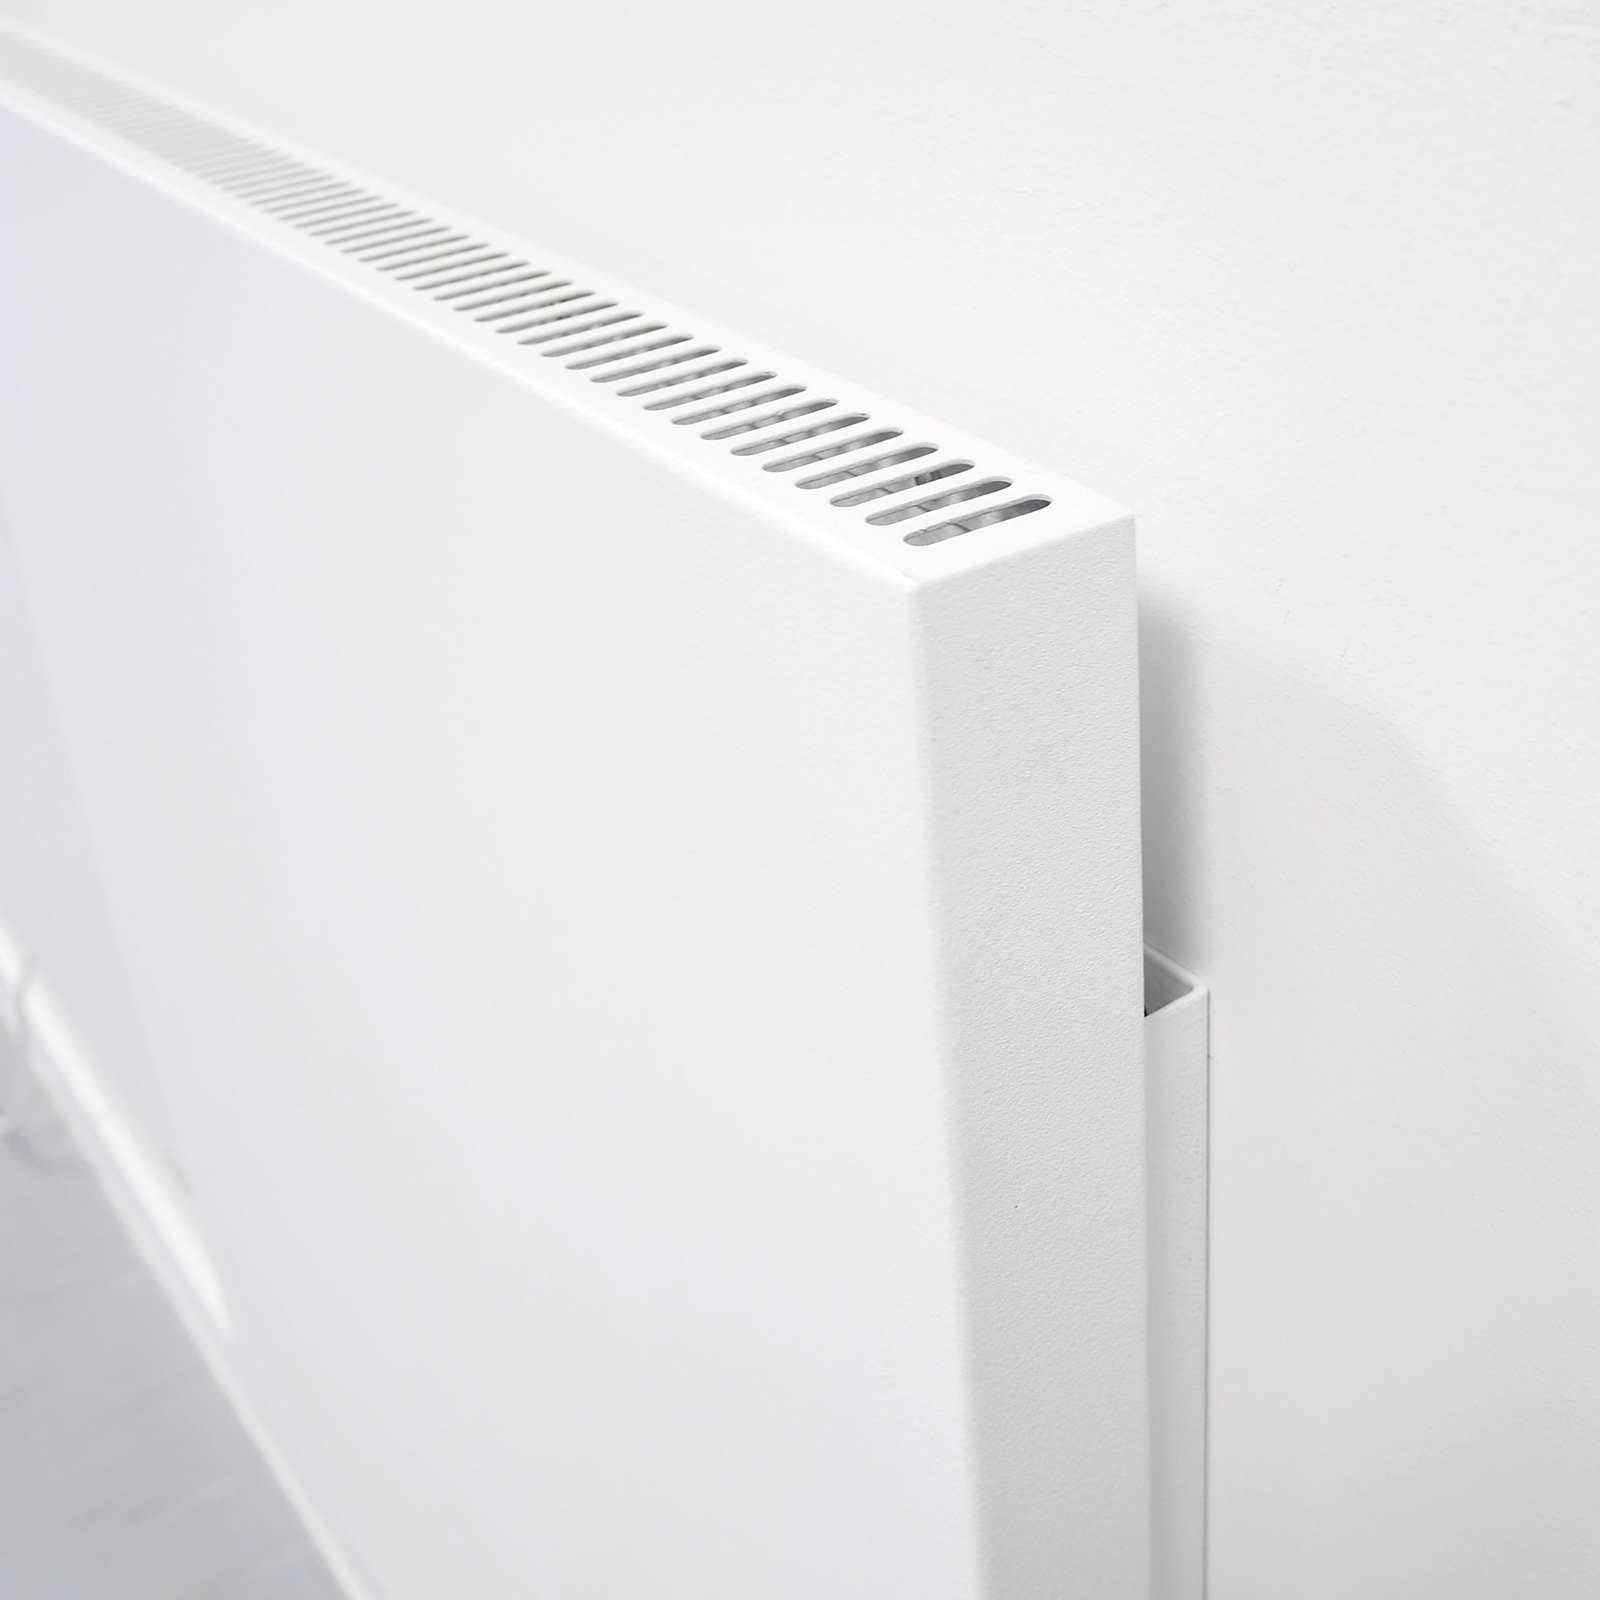 Vertical electric heaters wall mounted